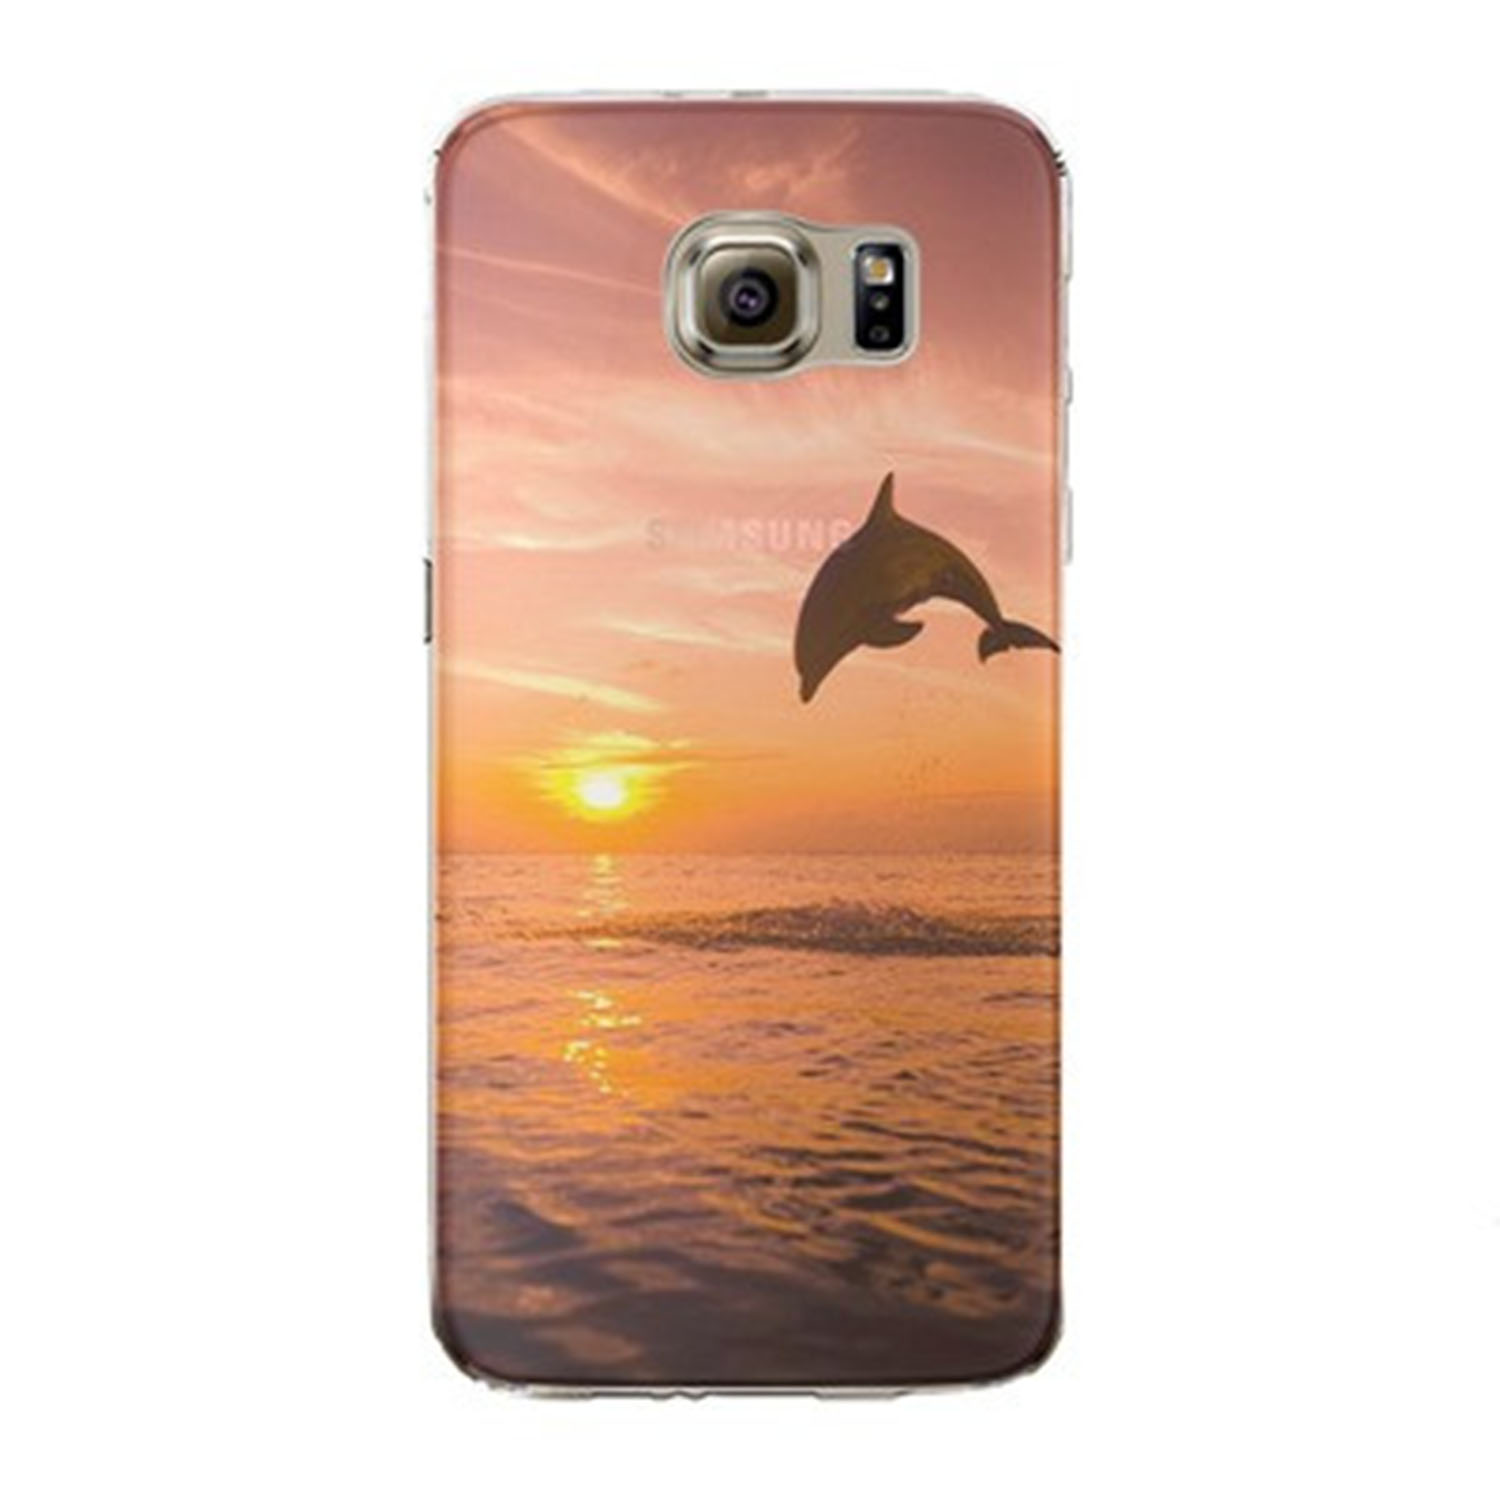 Kritzel Case Collection Galaxy S6 - Nature 332